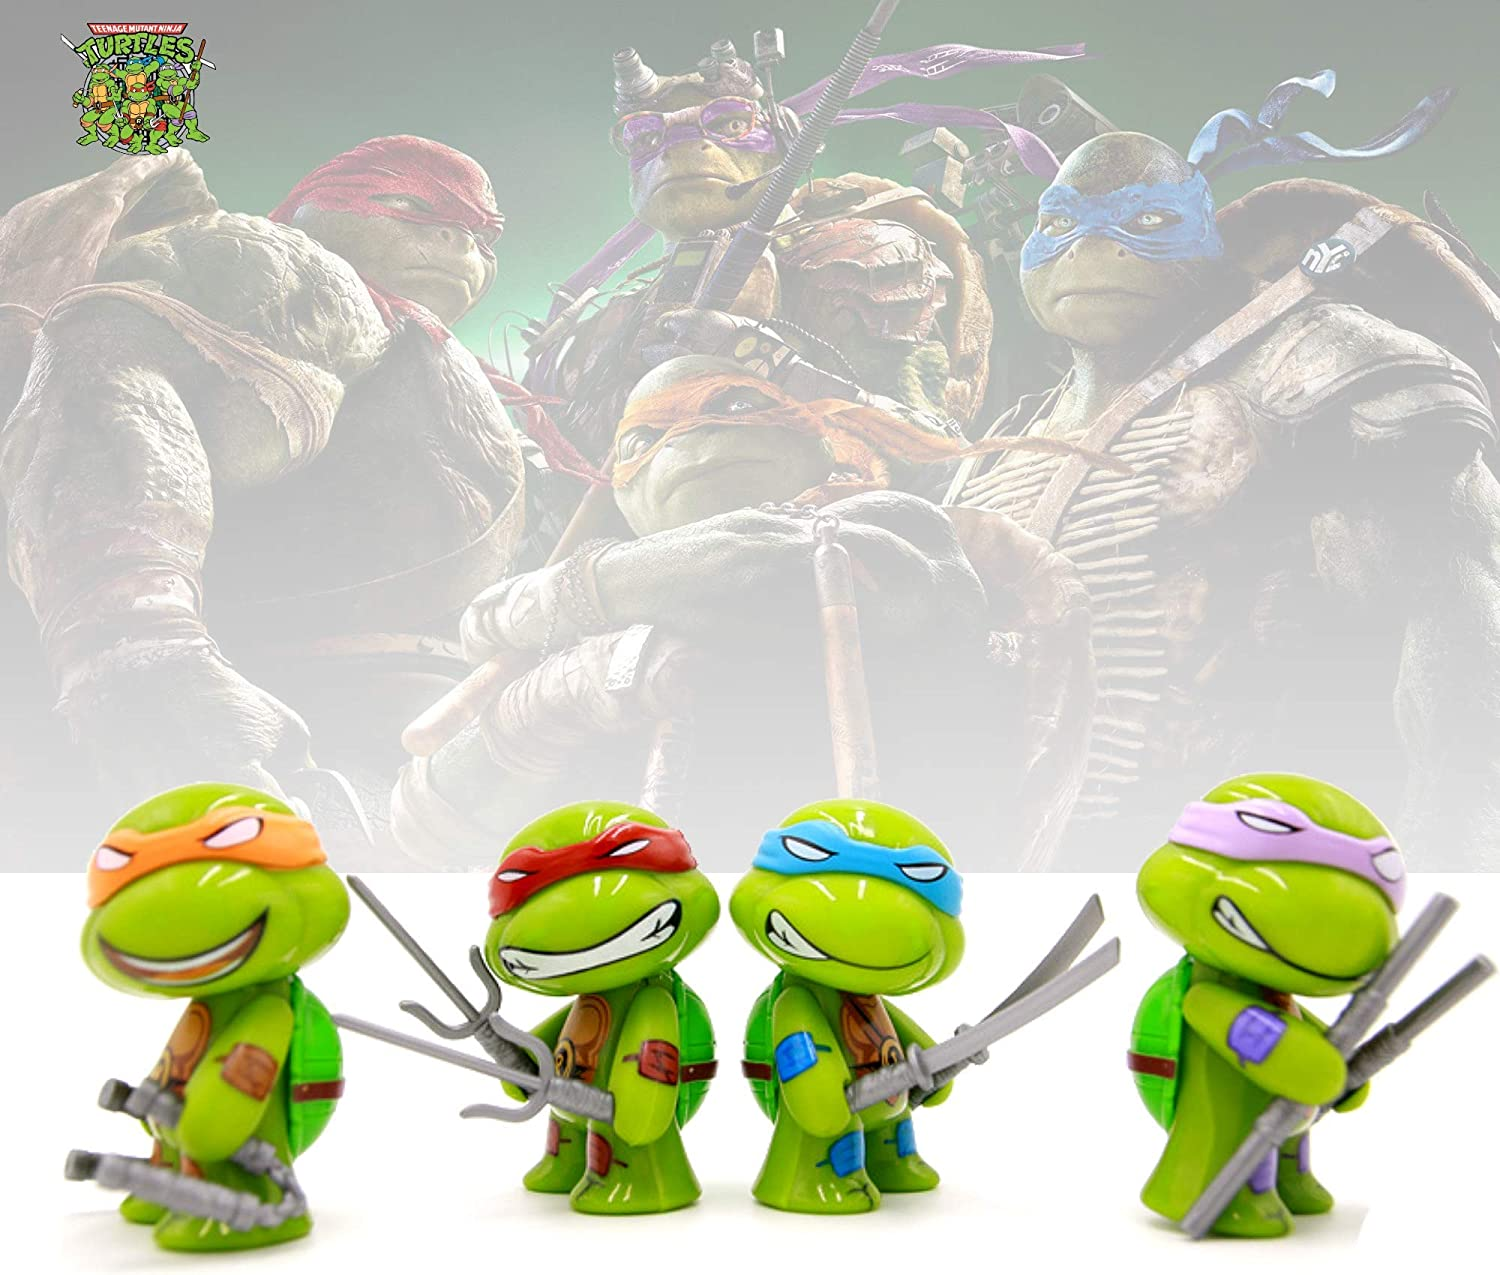 Amazon.com: YongEnShang Teenage Mutant Ninja Turtles Series ...